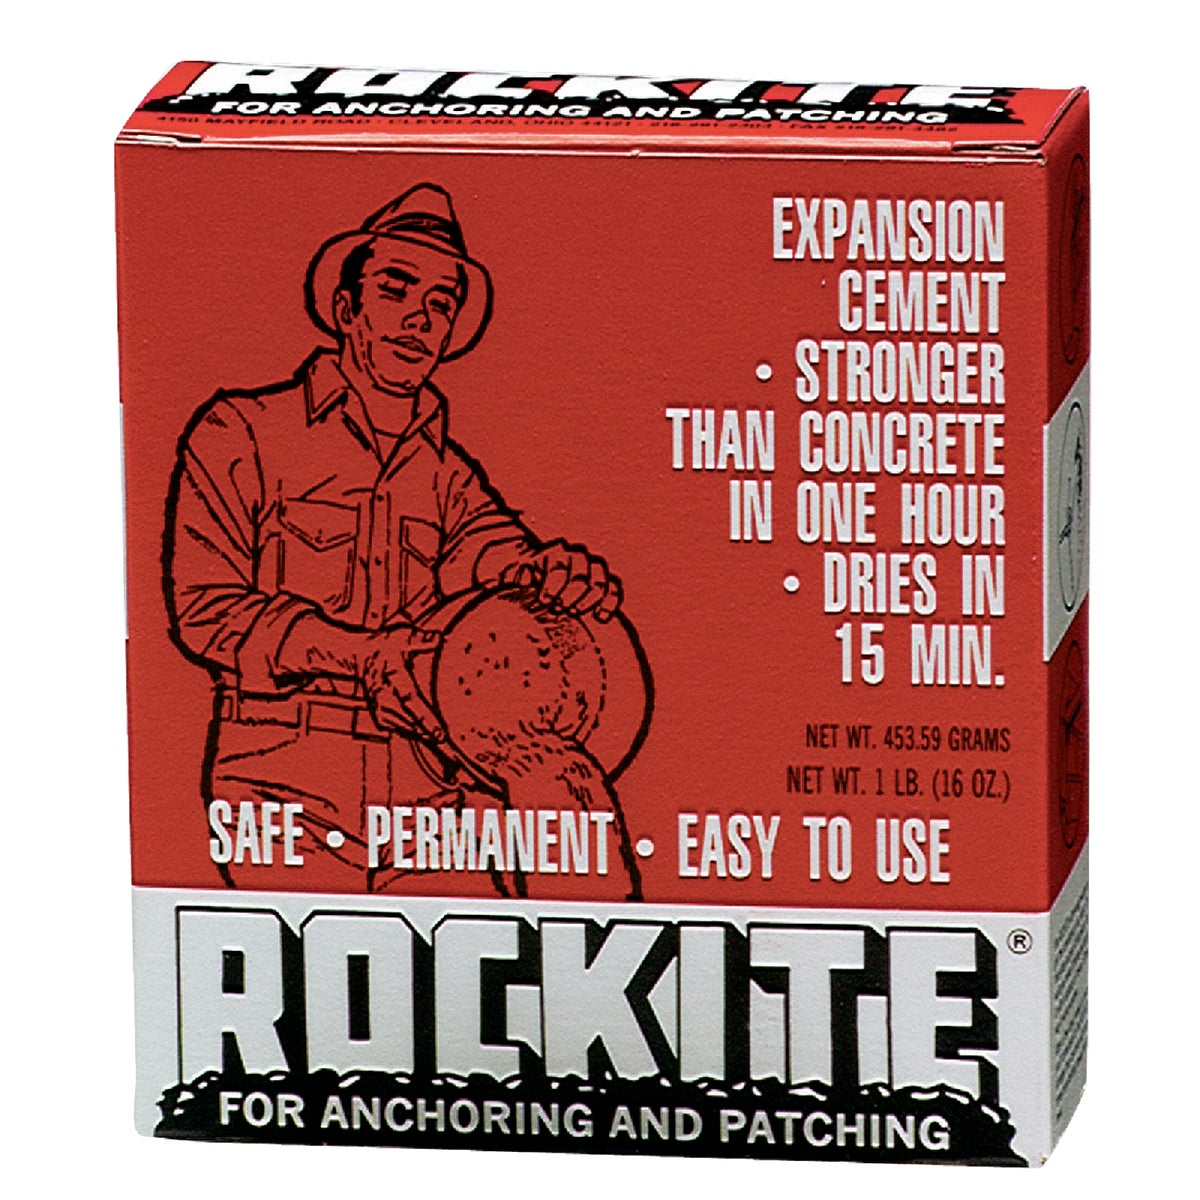 1LB ROCKITE CEMENT - 10001 by Hartline Products